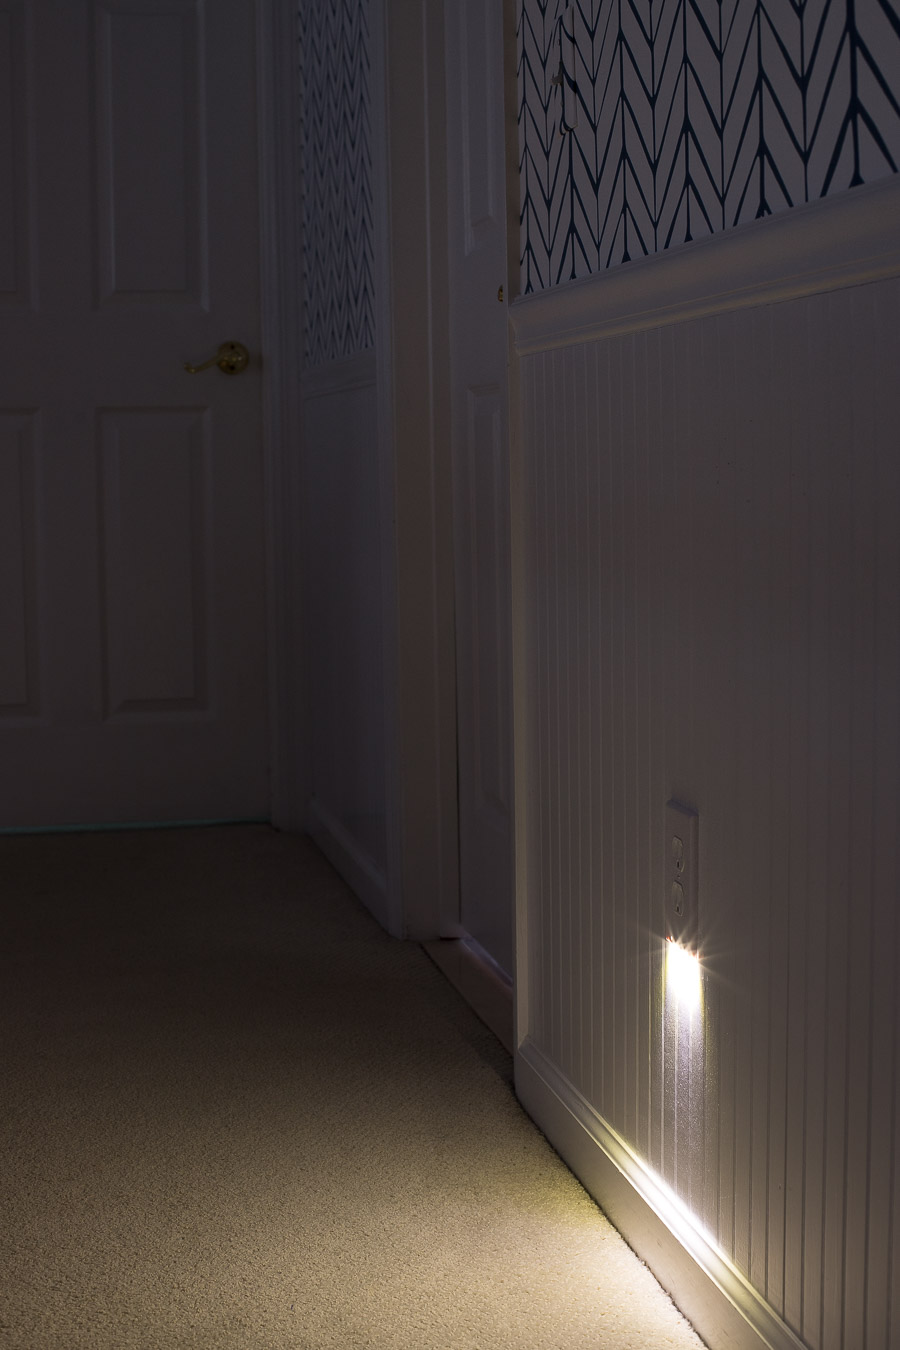 The perfect way to light your hallway with a nightlight without using any outlets! Great for bathrooms too and simple to install!